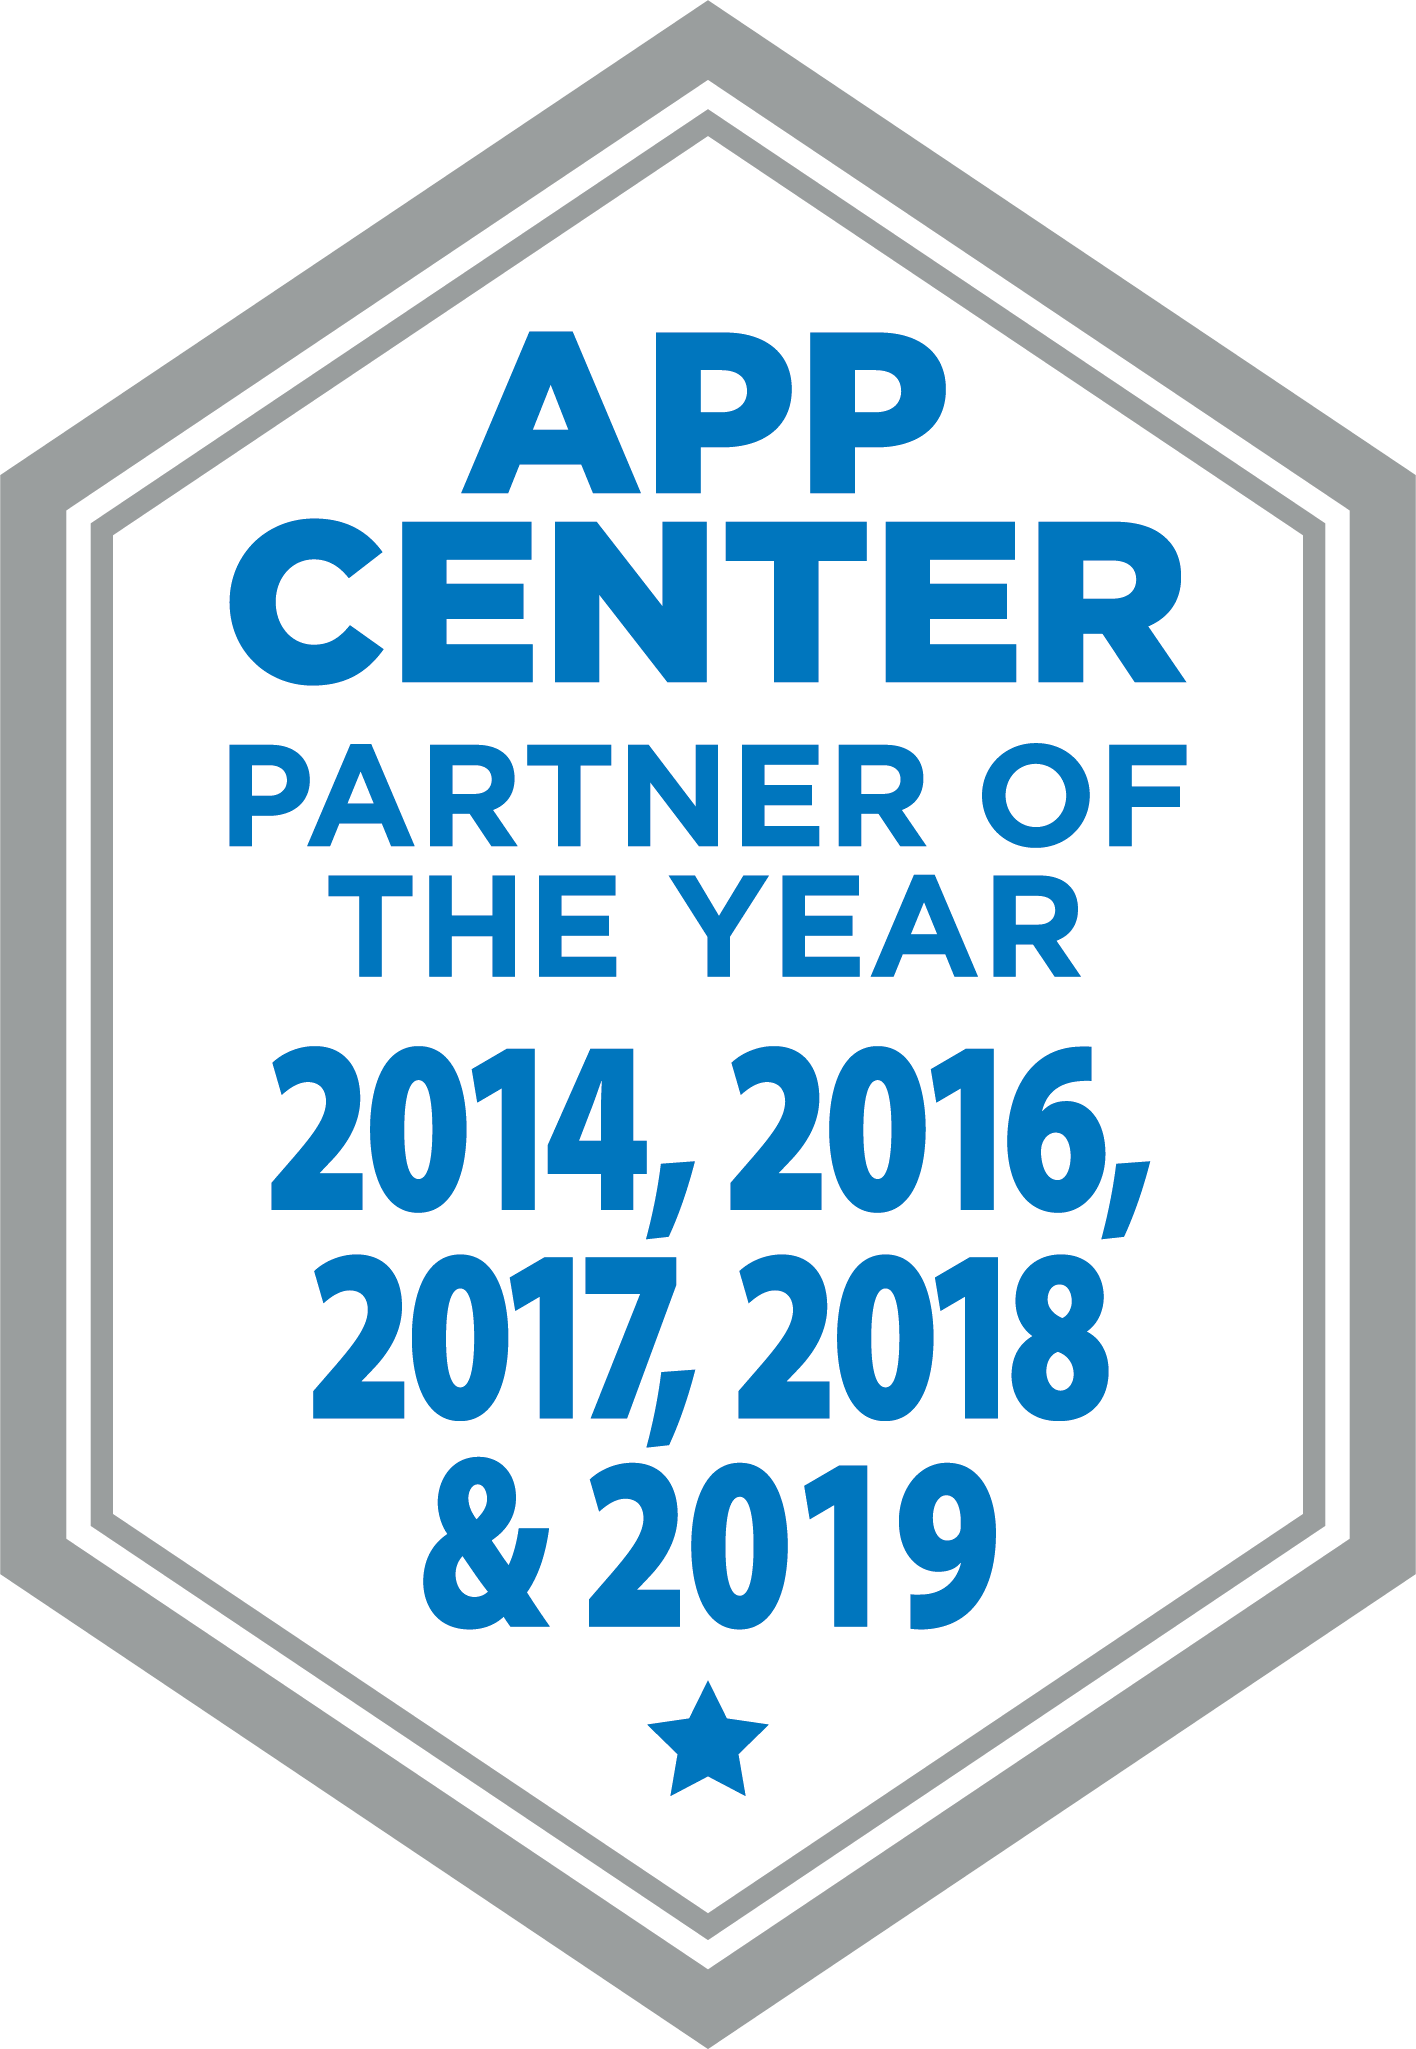 Concur App Center Partner of the Year 2019